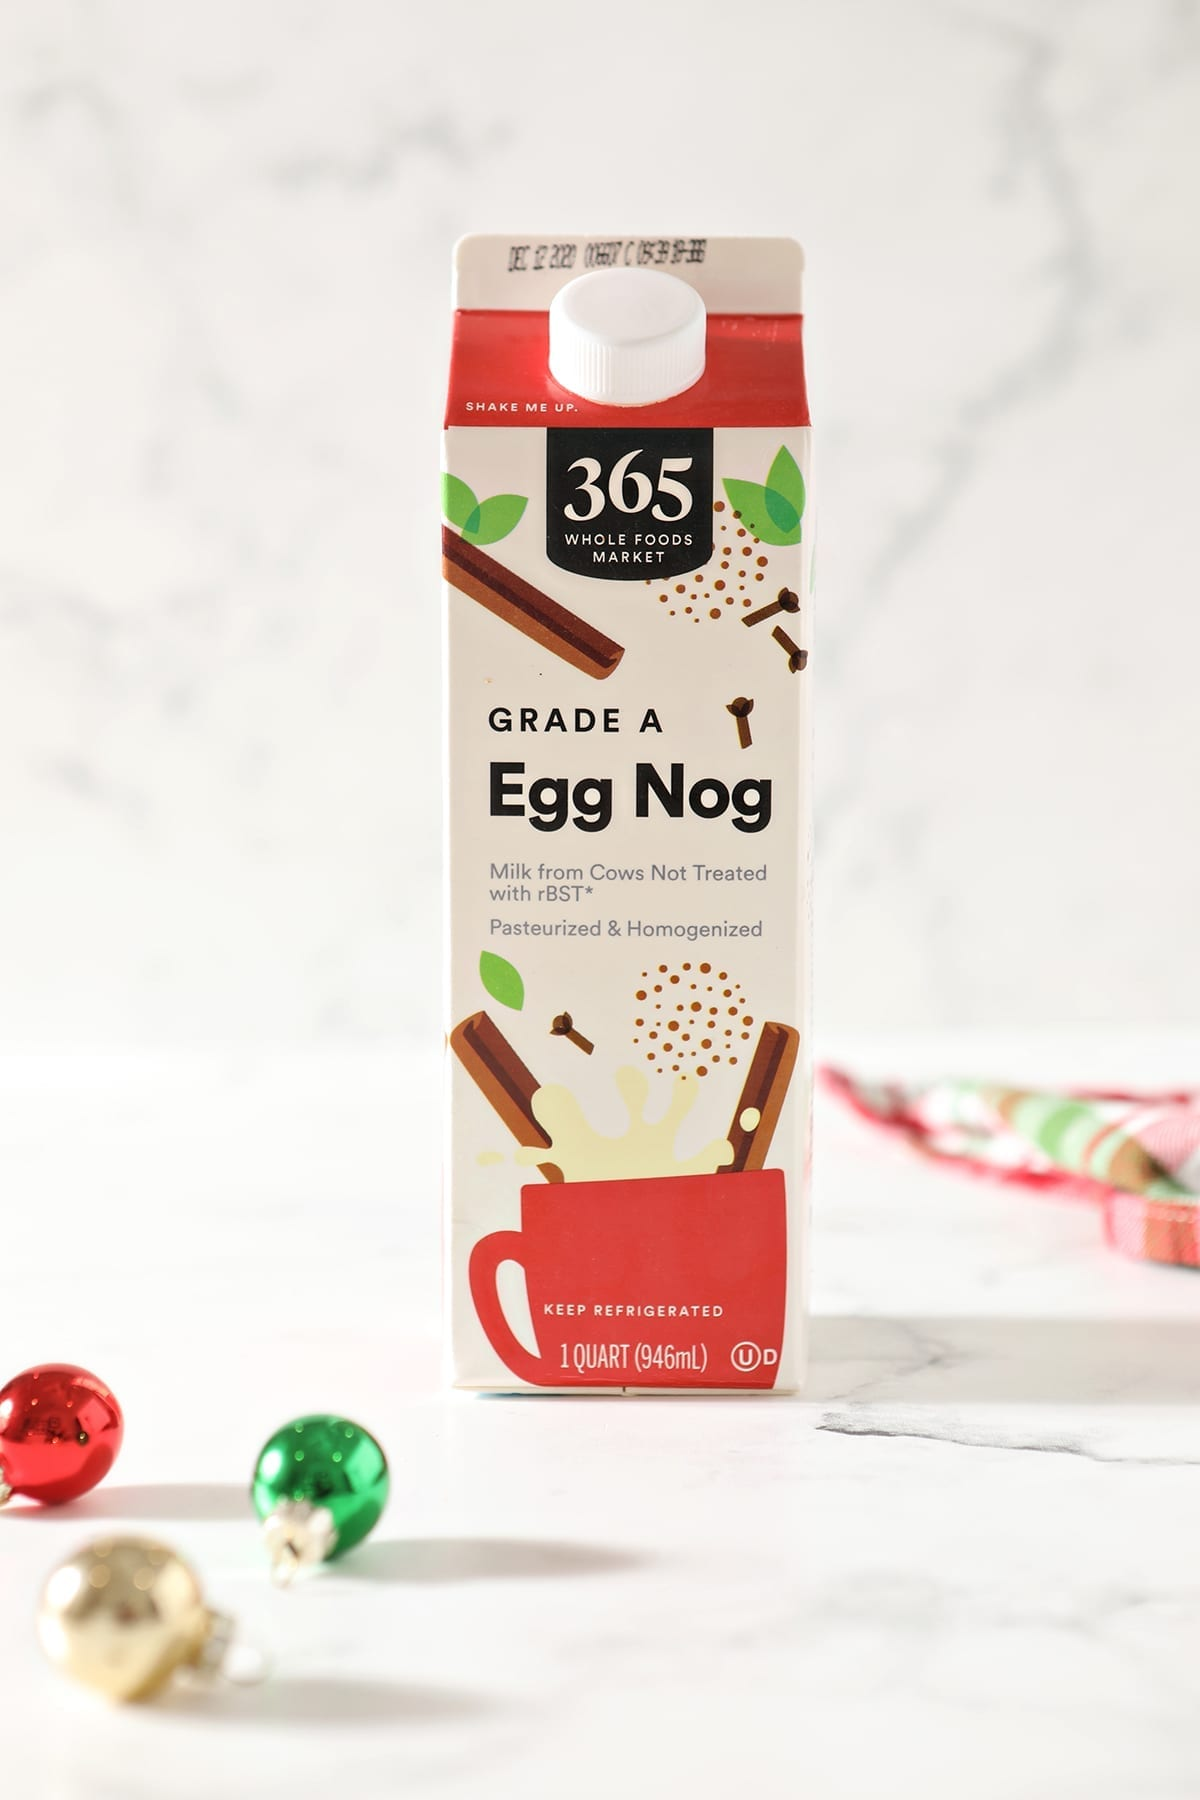 A box of 365 eggnog sits on a marble surface next to red, green and gold ornaments